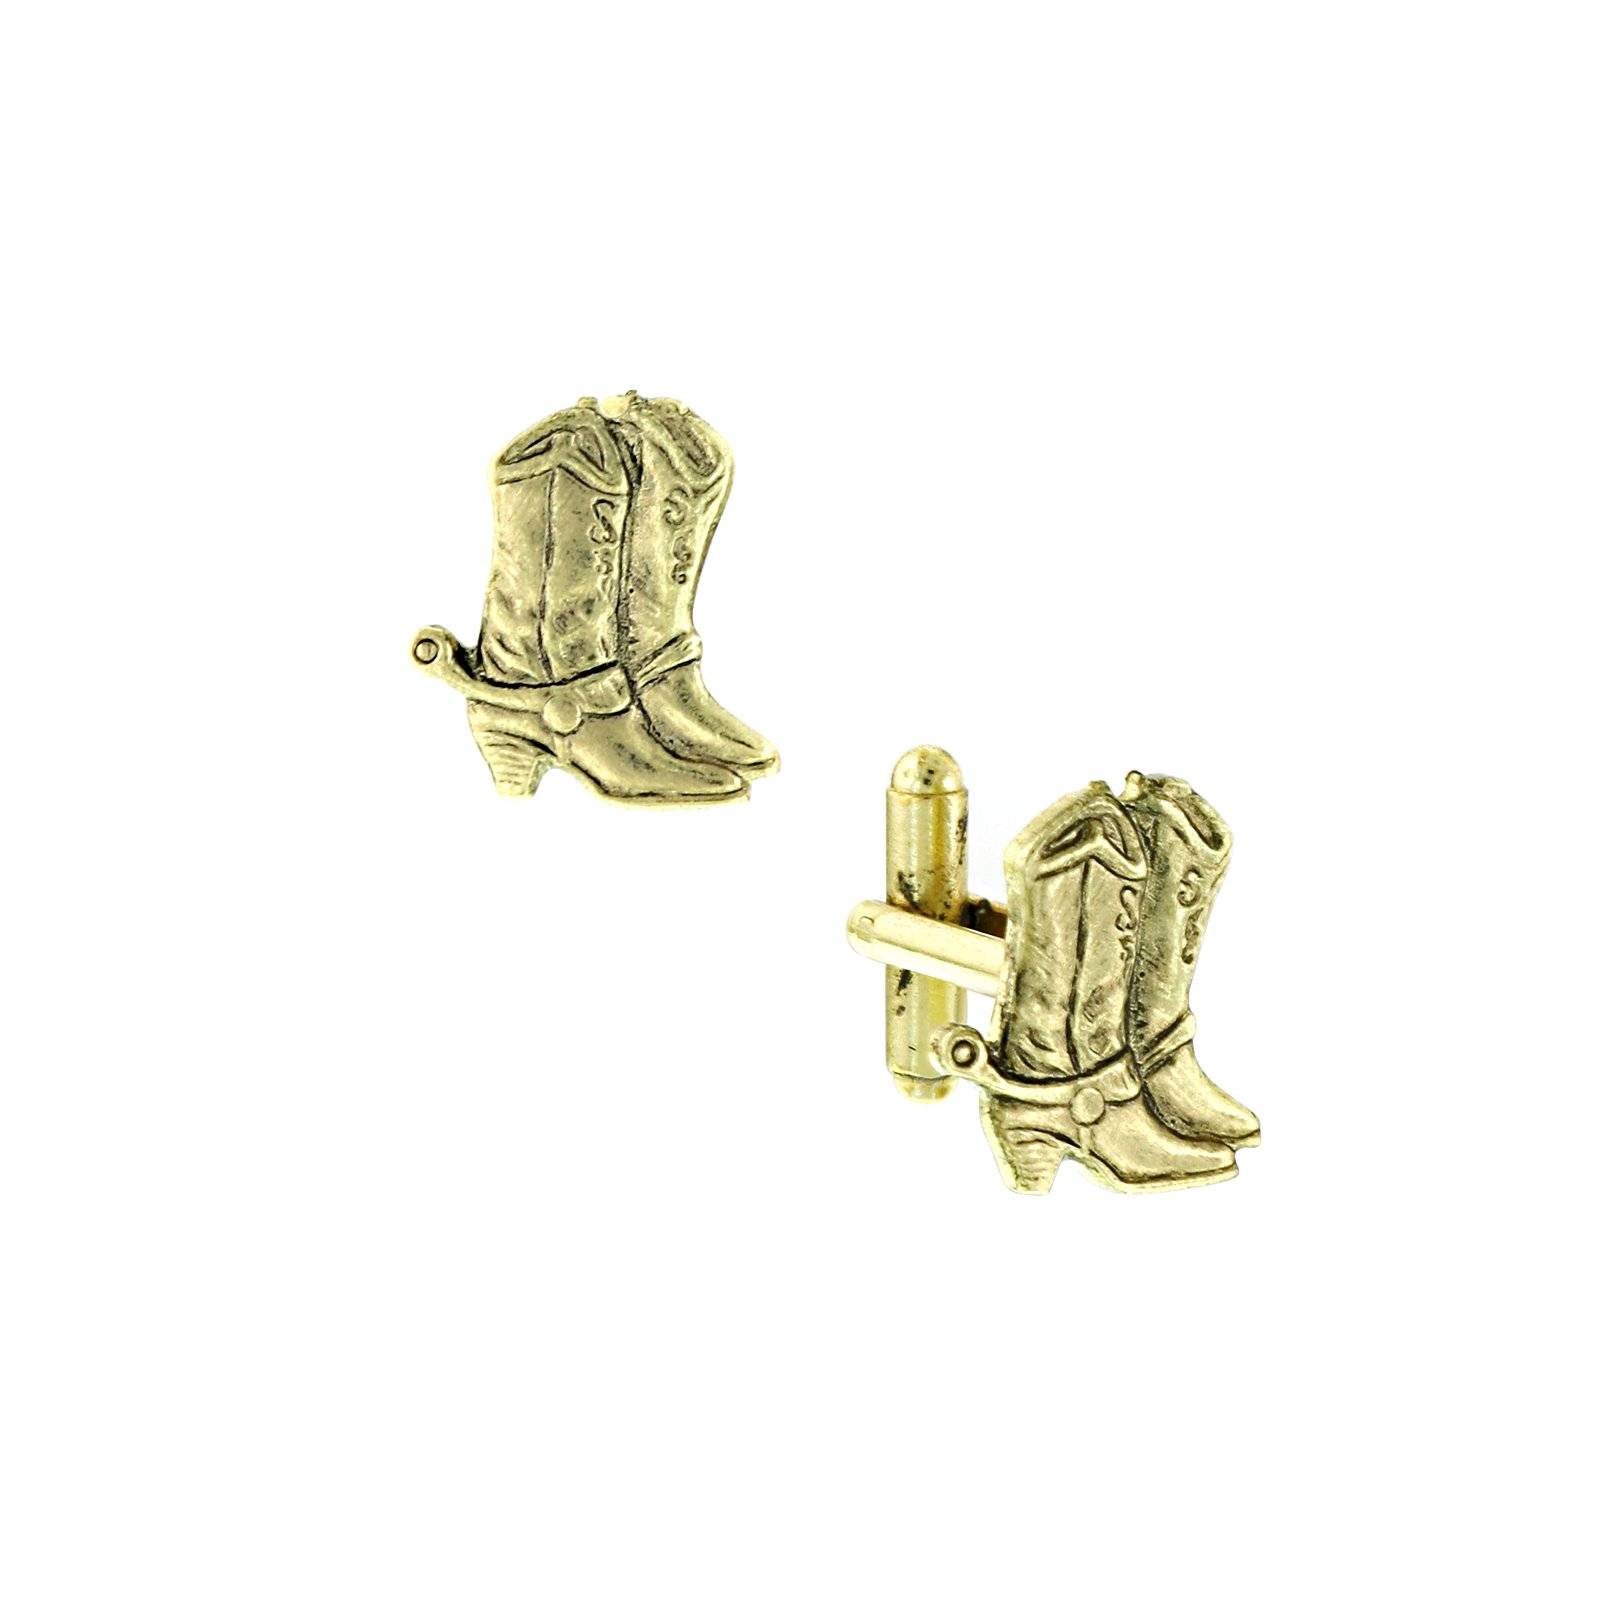 1928 Jewelry Gold-Tone Cowboy Boots Cuff Links